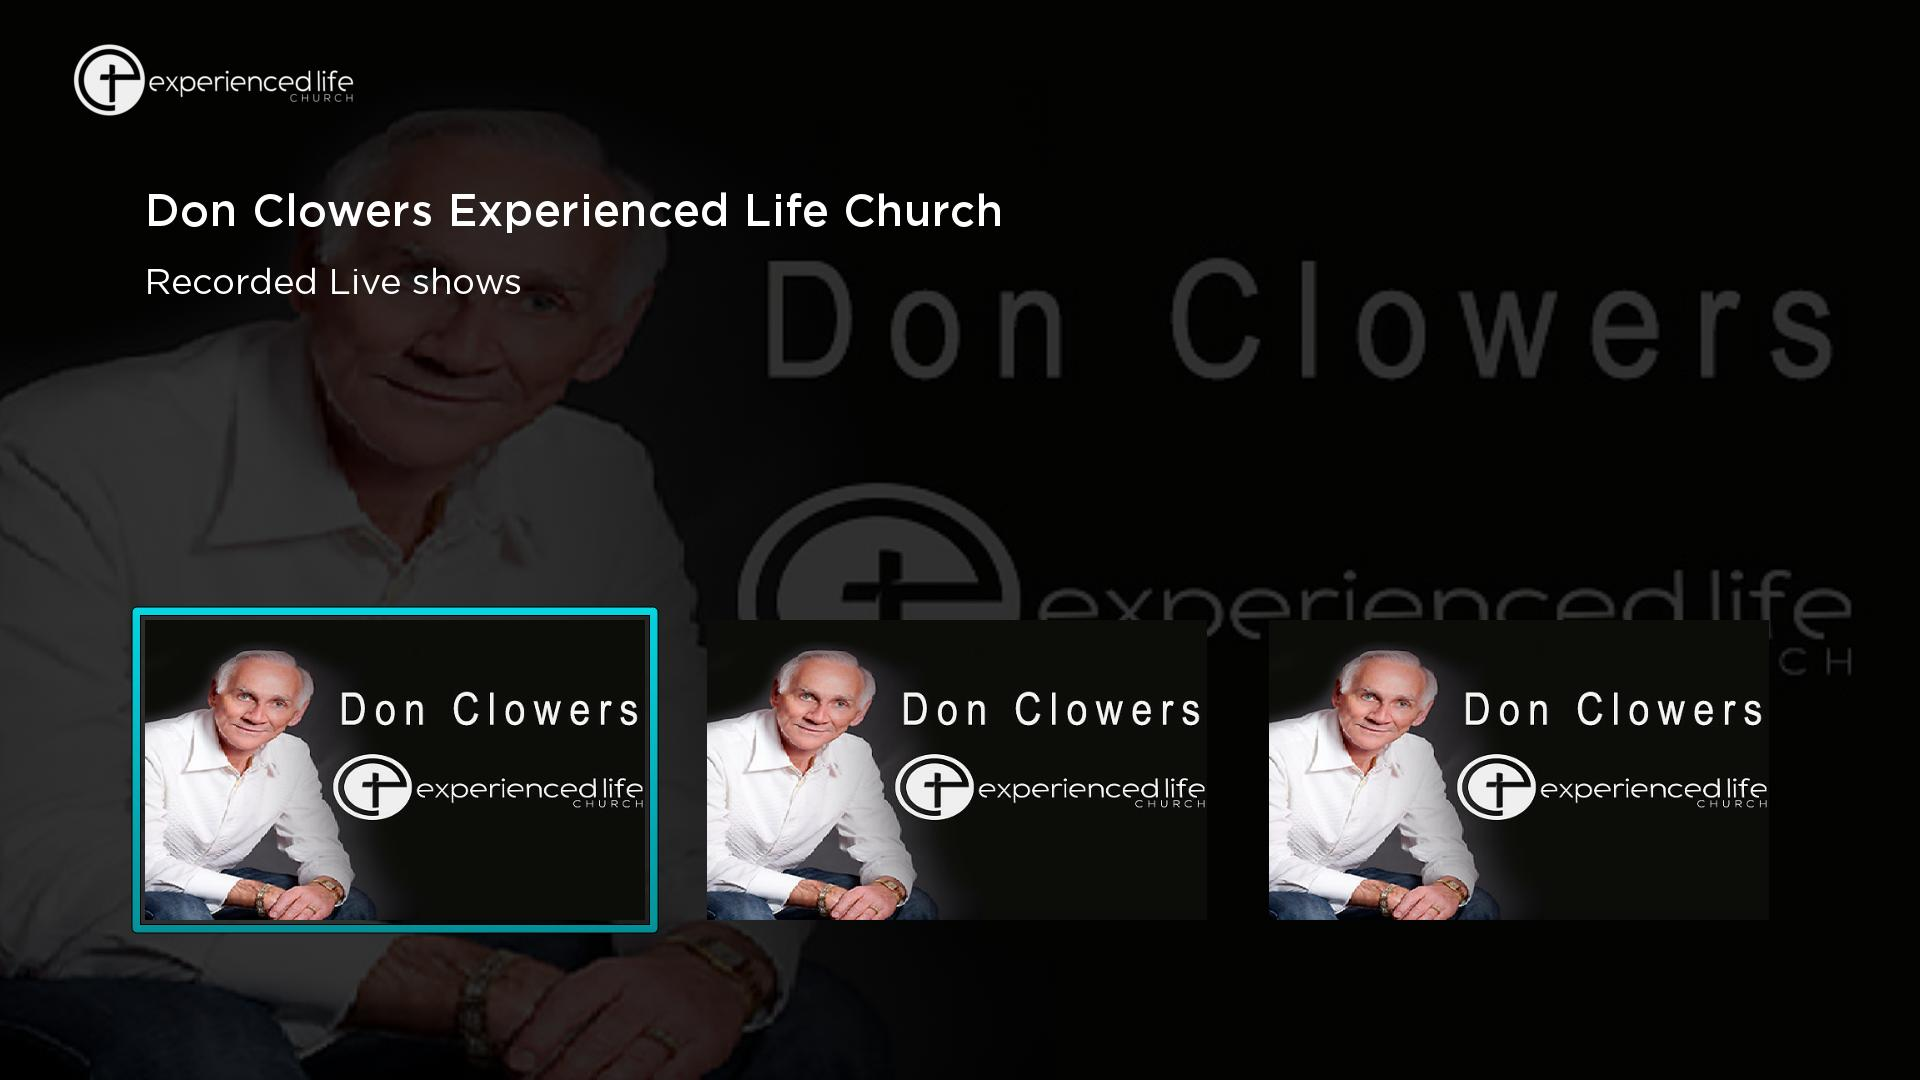 Today with Don Clowers Screenshot 001